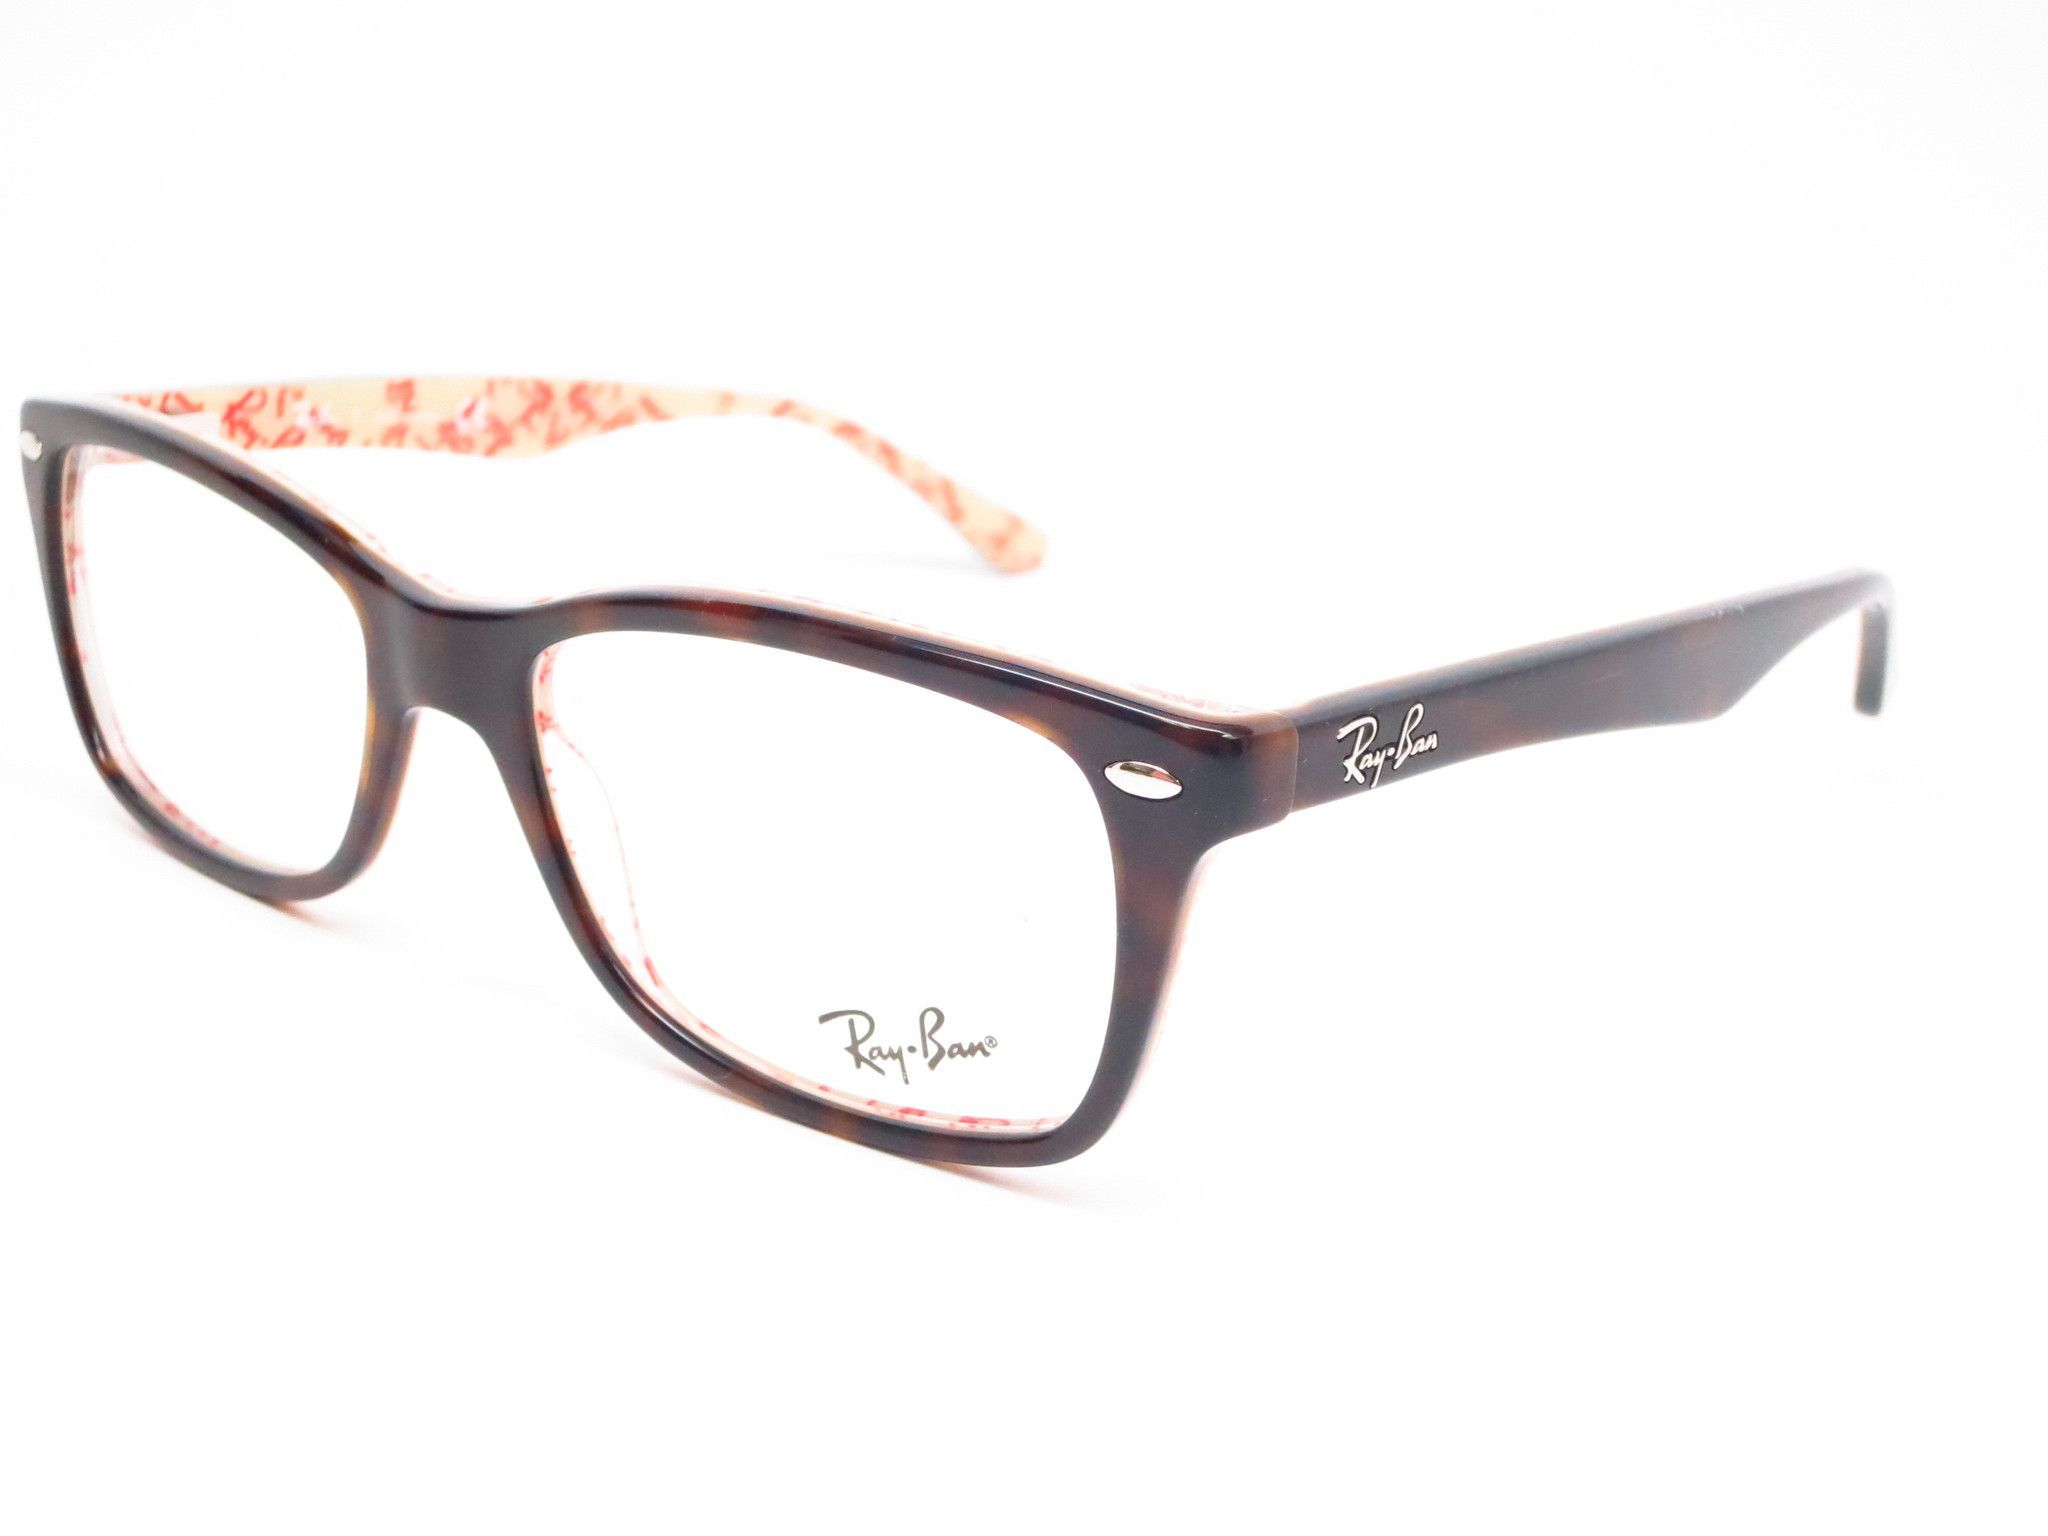 Ray-Ban RB 5228 Dark Havana on Beige Text 5057 Eyeglasses | Things I ...